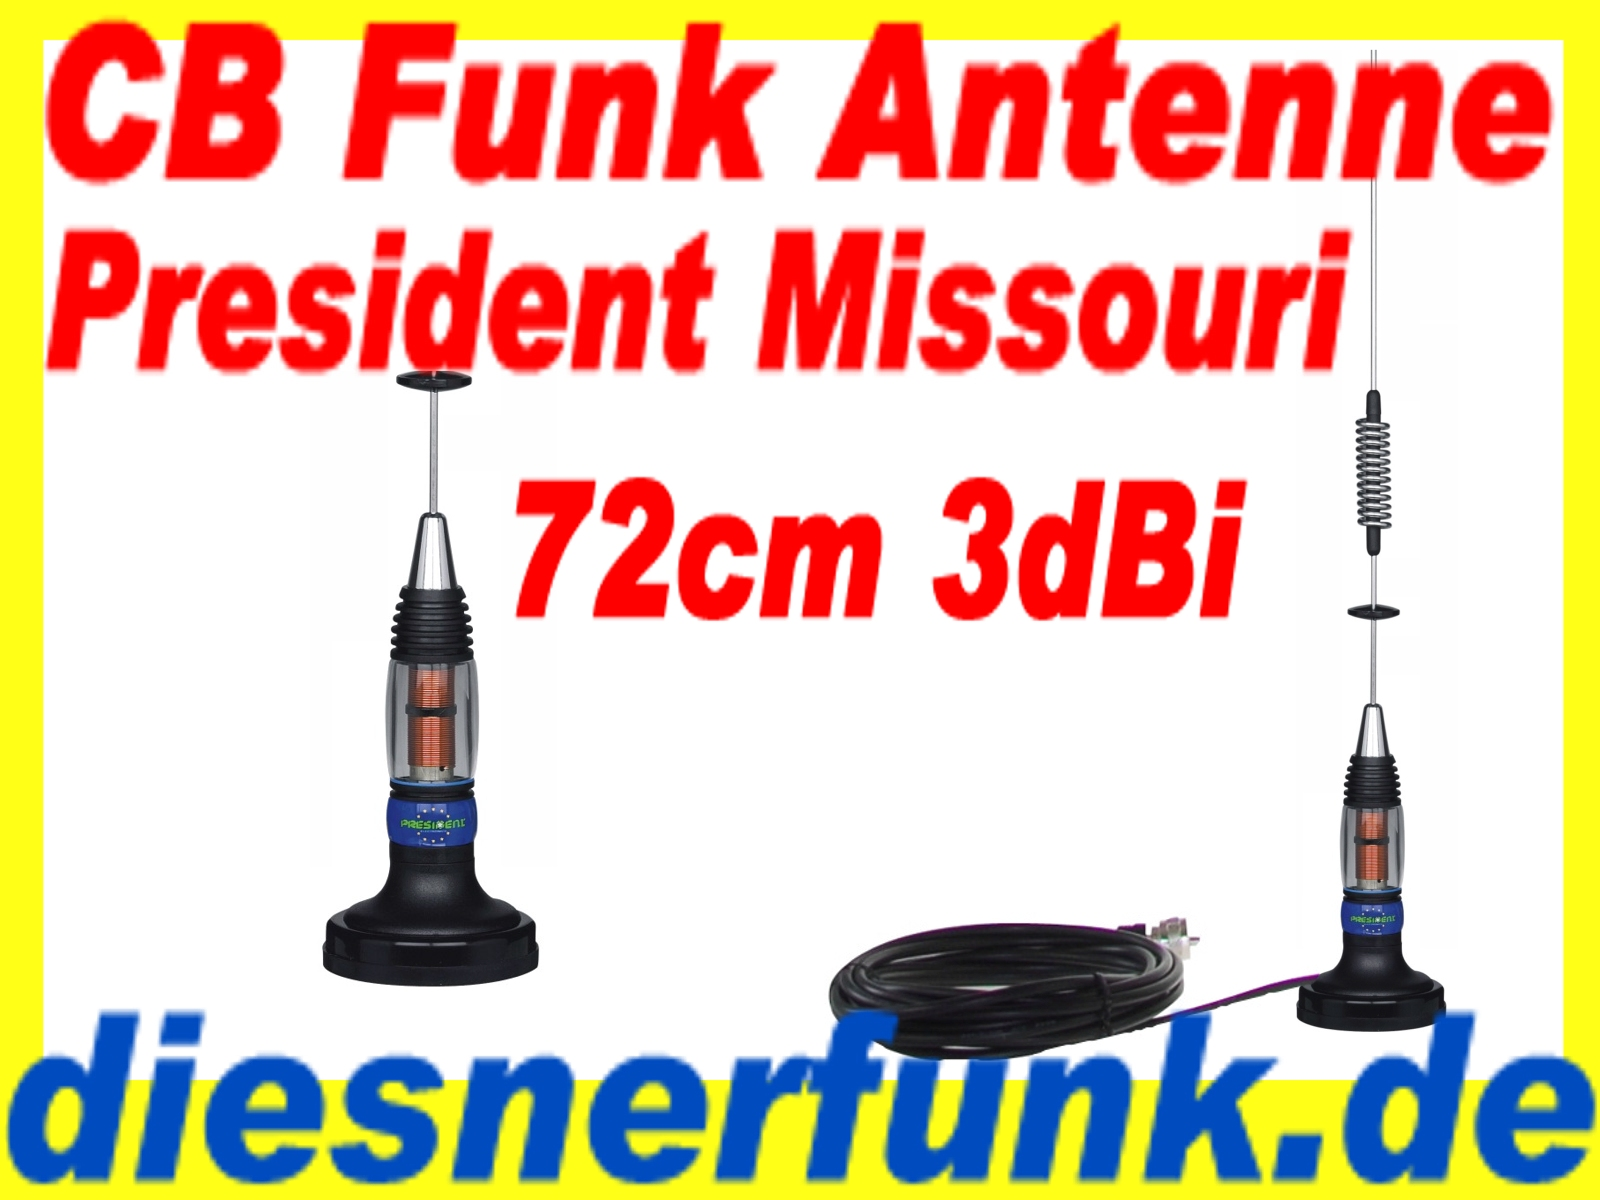 cb funk magnet antenne president missouri 3dbi 72cm top f r lkw actros volvo ebay. Black Bedroom Furniture Sets. Home Design Ideas